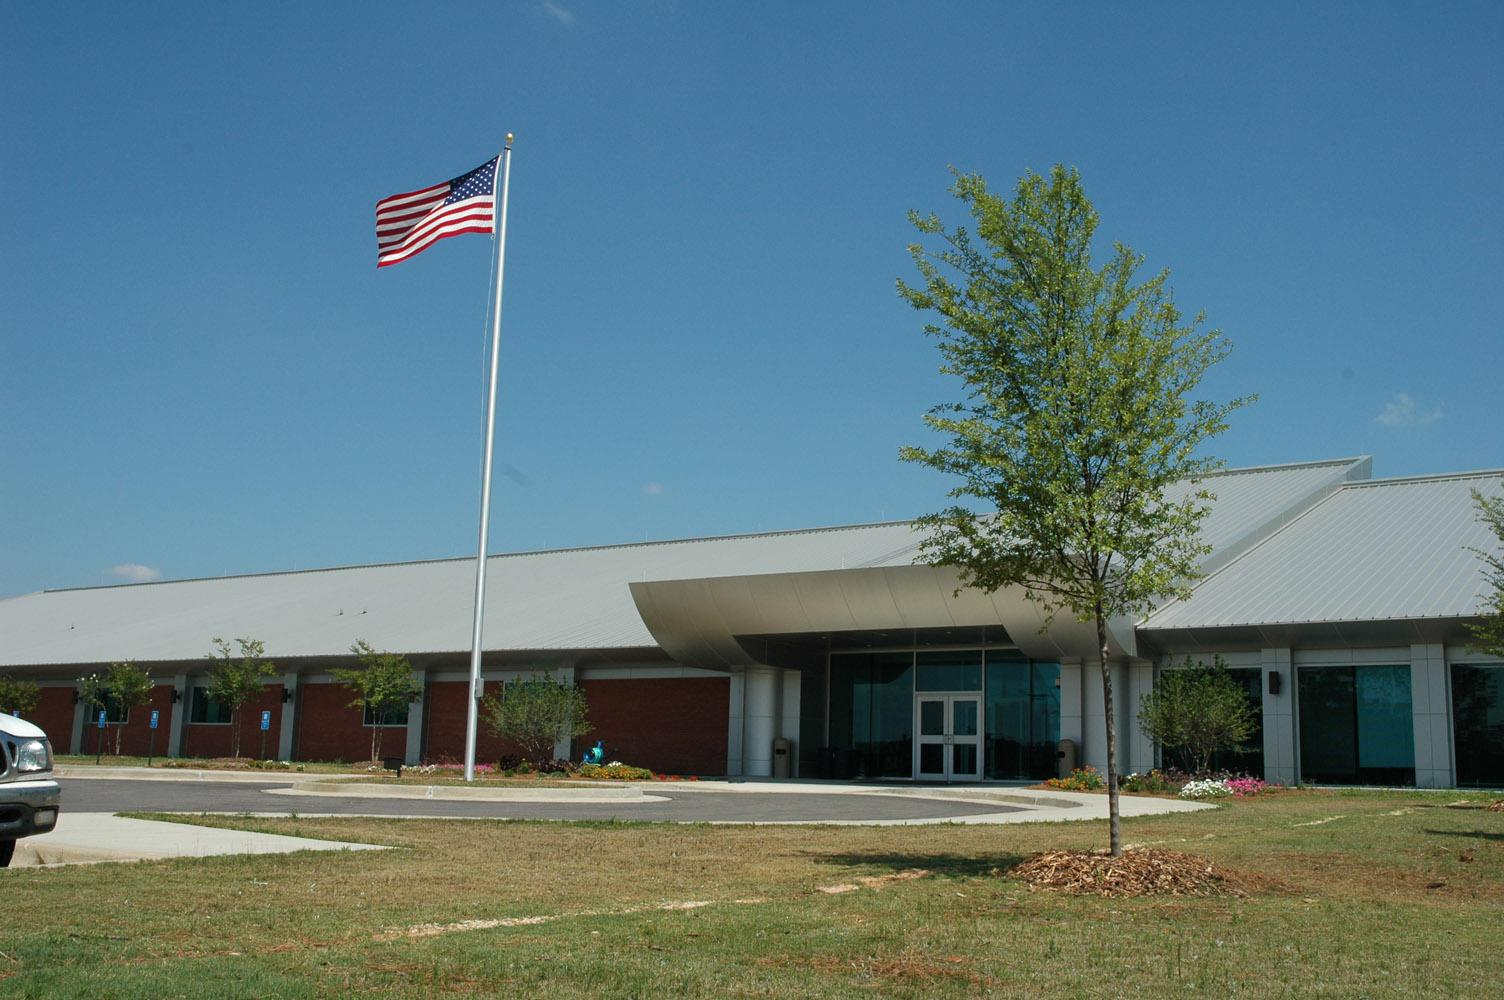 U.S. Department of Agriculture horticulture laboratory in Poplarville